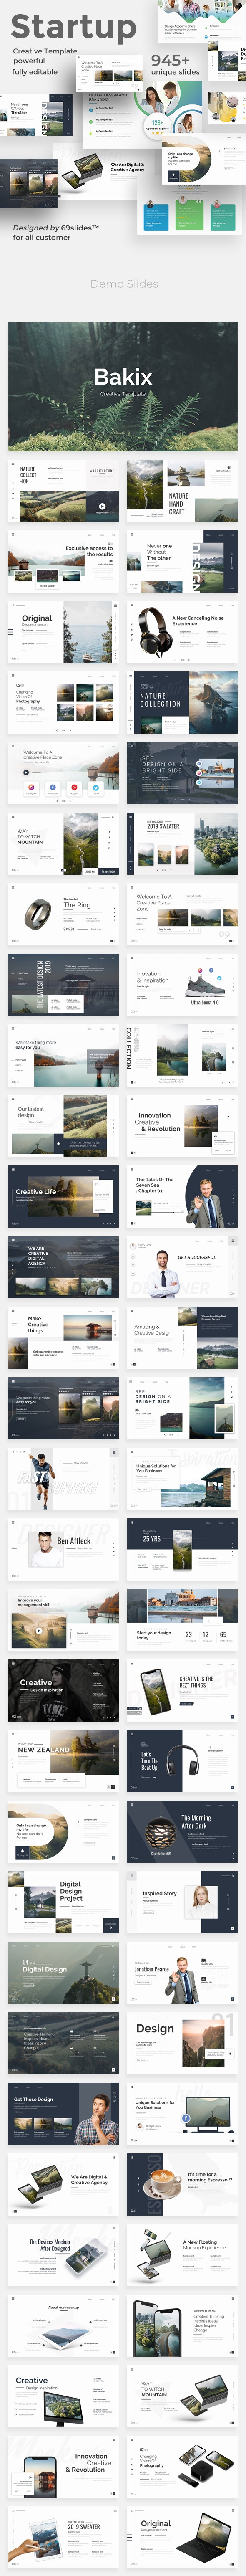 3 in 1 Easy Startup Bundle Keynote Pitch Deck Template - Creative Keynote Templates